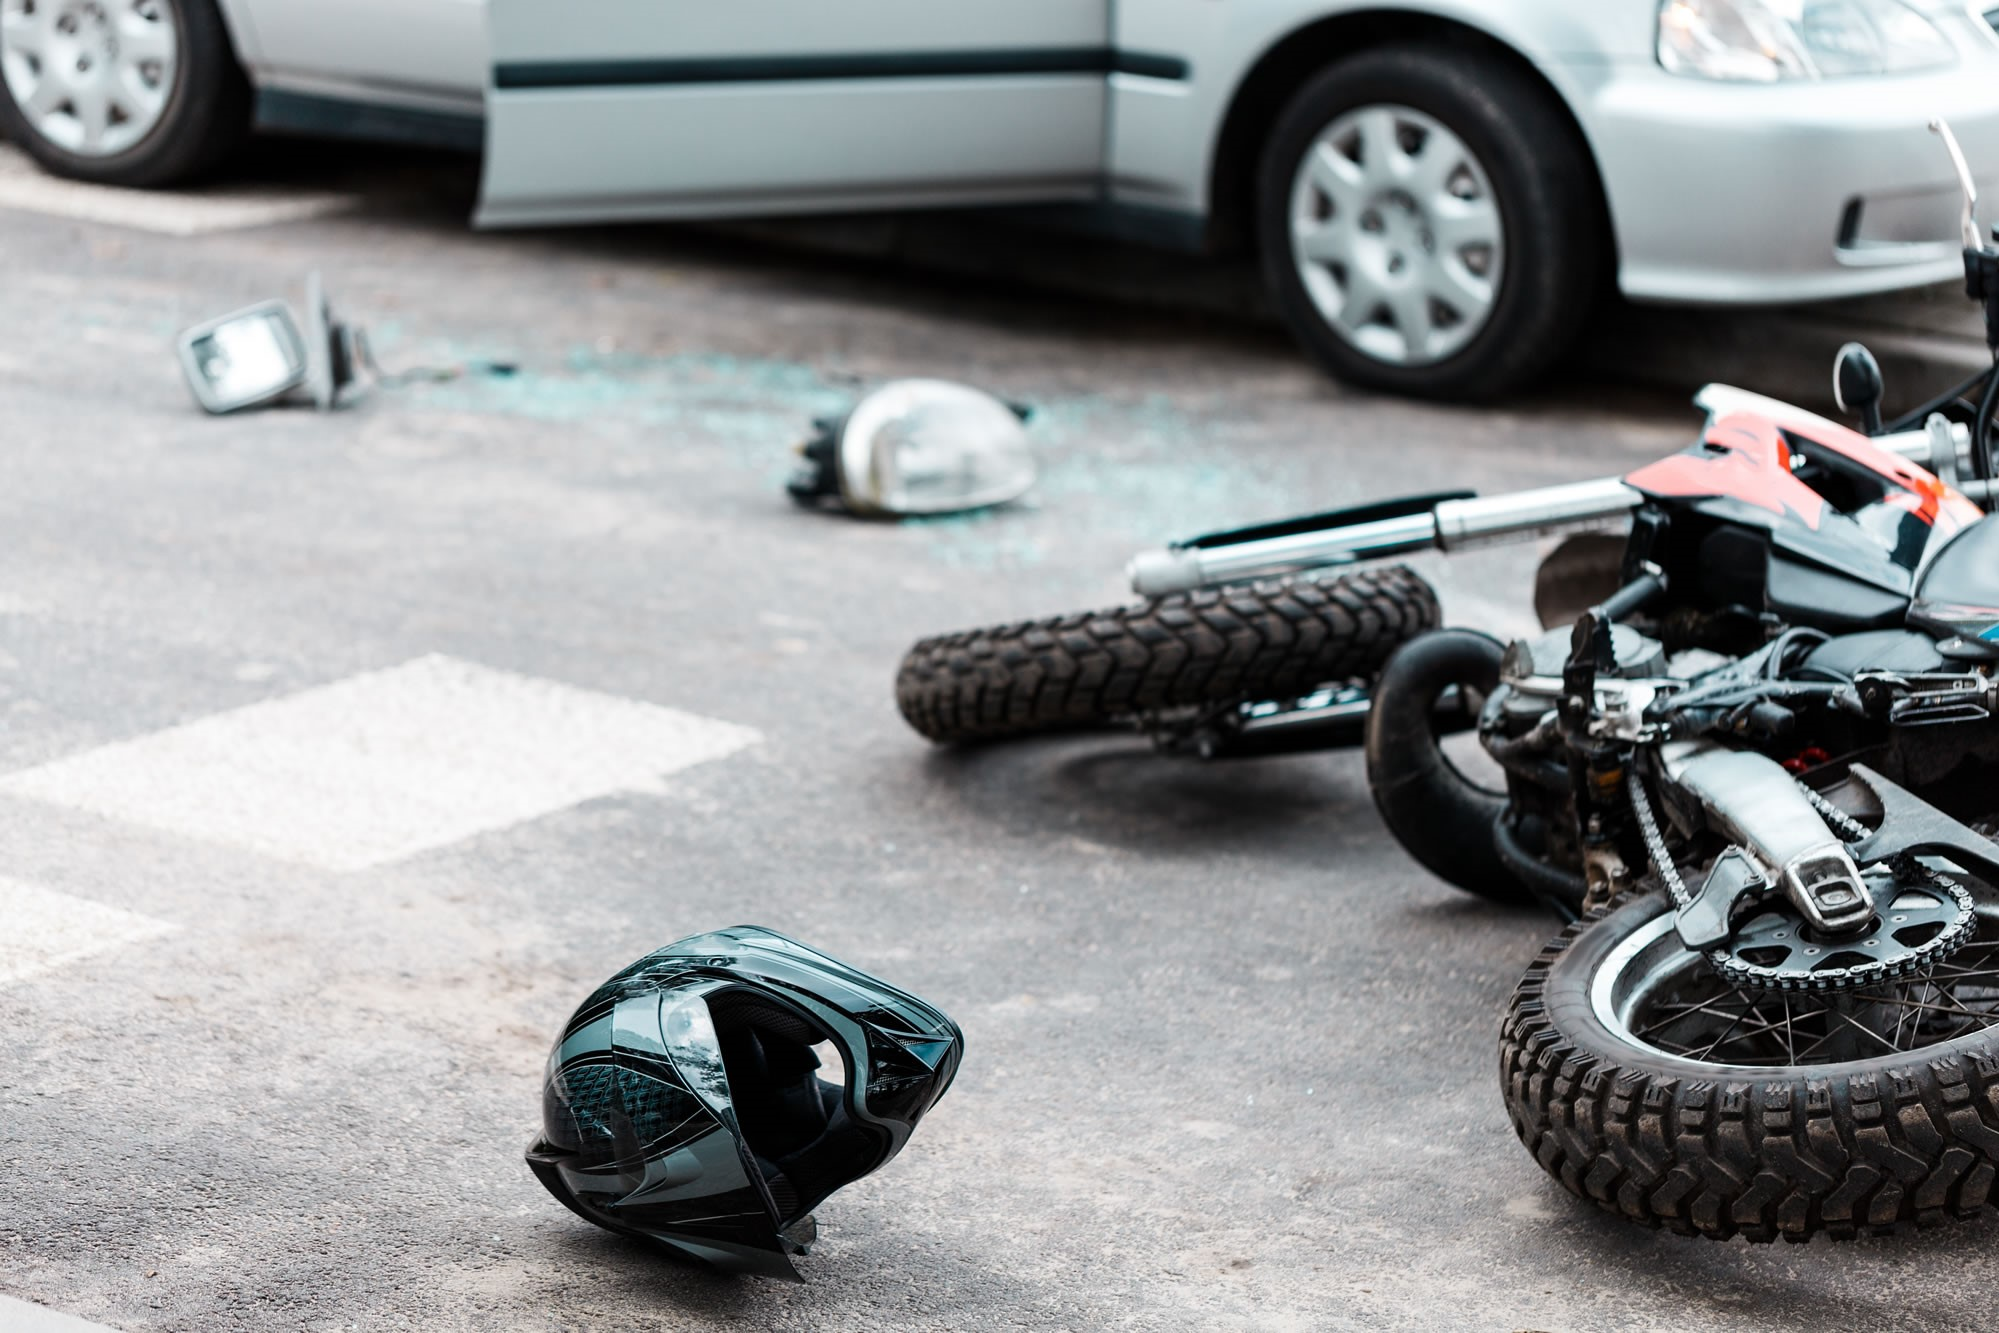 Motorbike Crash, Chopper Collision, Motorcycle Hit by Car - Compensation For Your Accident / Personal Injury Claim Managers / Accident Claims UK